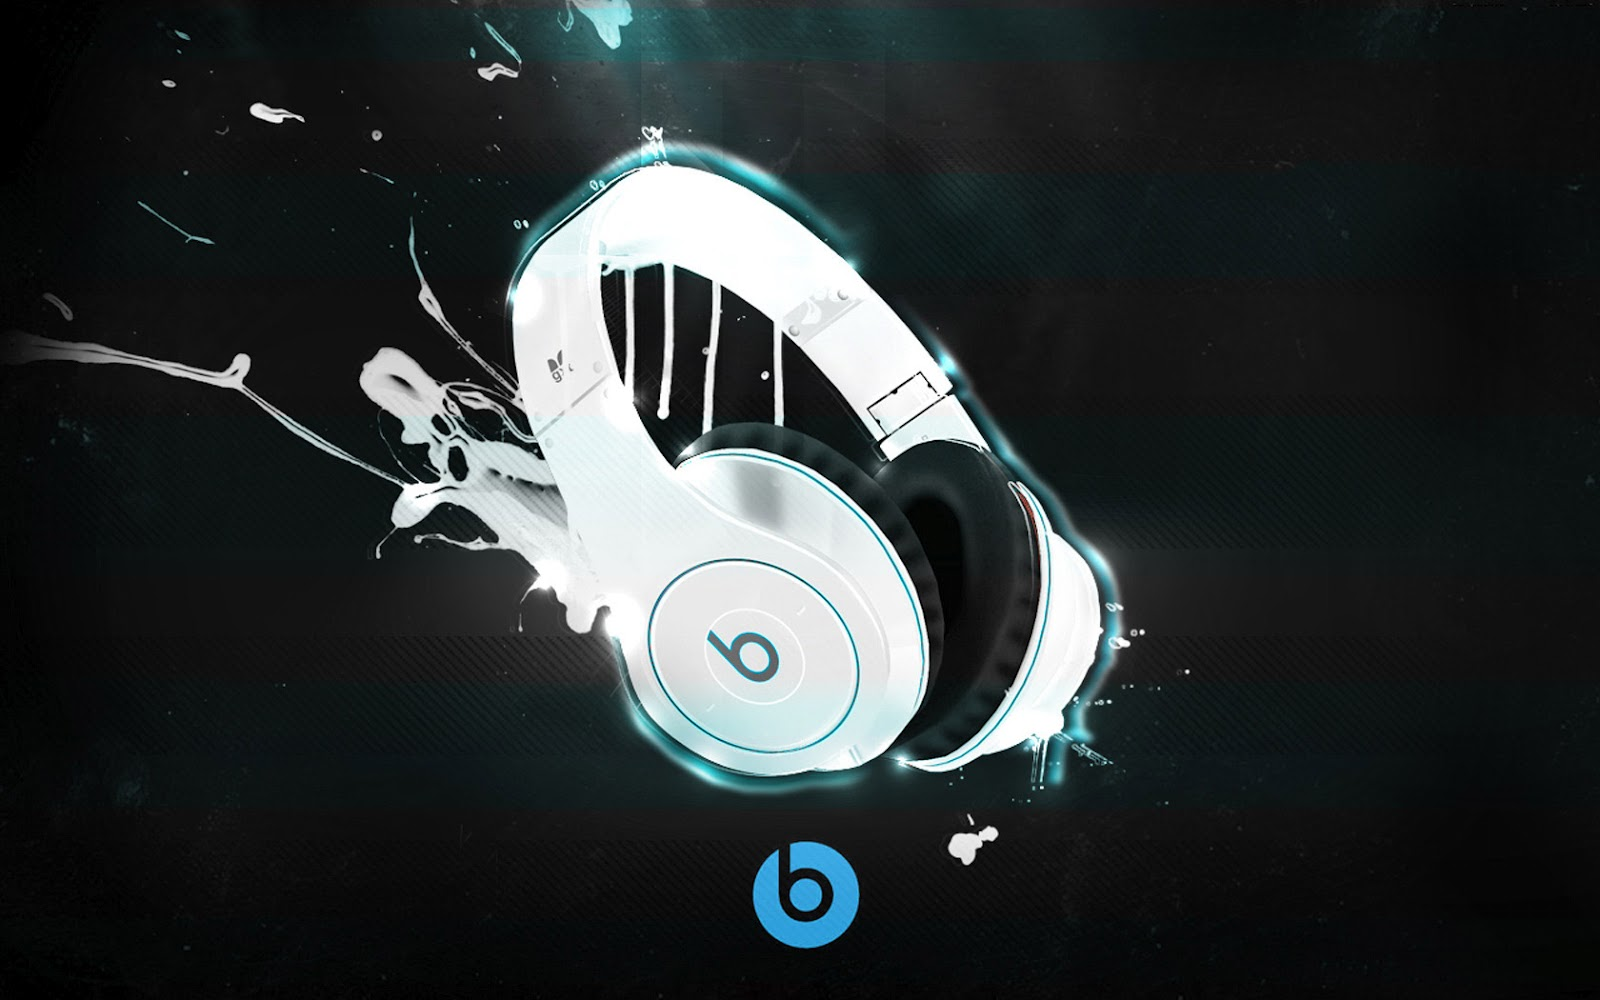 http://4.bp.blogspot.com/-B7xE2PkvcJk/T2c-P5MSuLI/AAAAAAAAA6w/XXmpNBM0zMY/s1600/beats_by_dre_hd_widescreen_wallpapers_1680x1050.jpeg